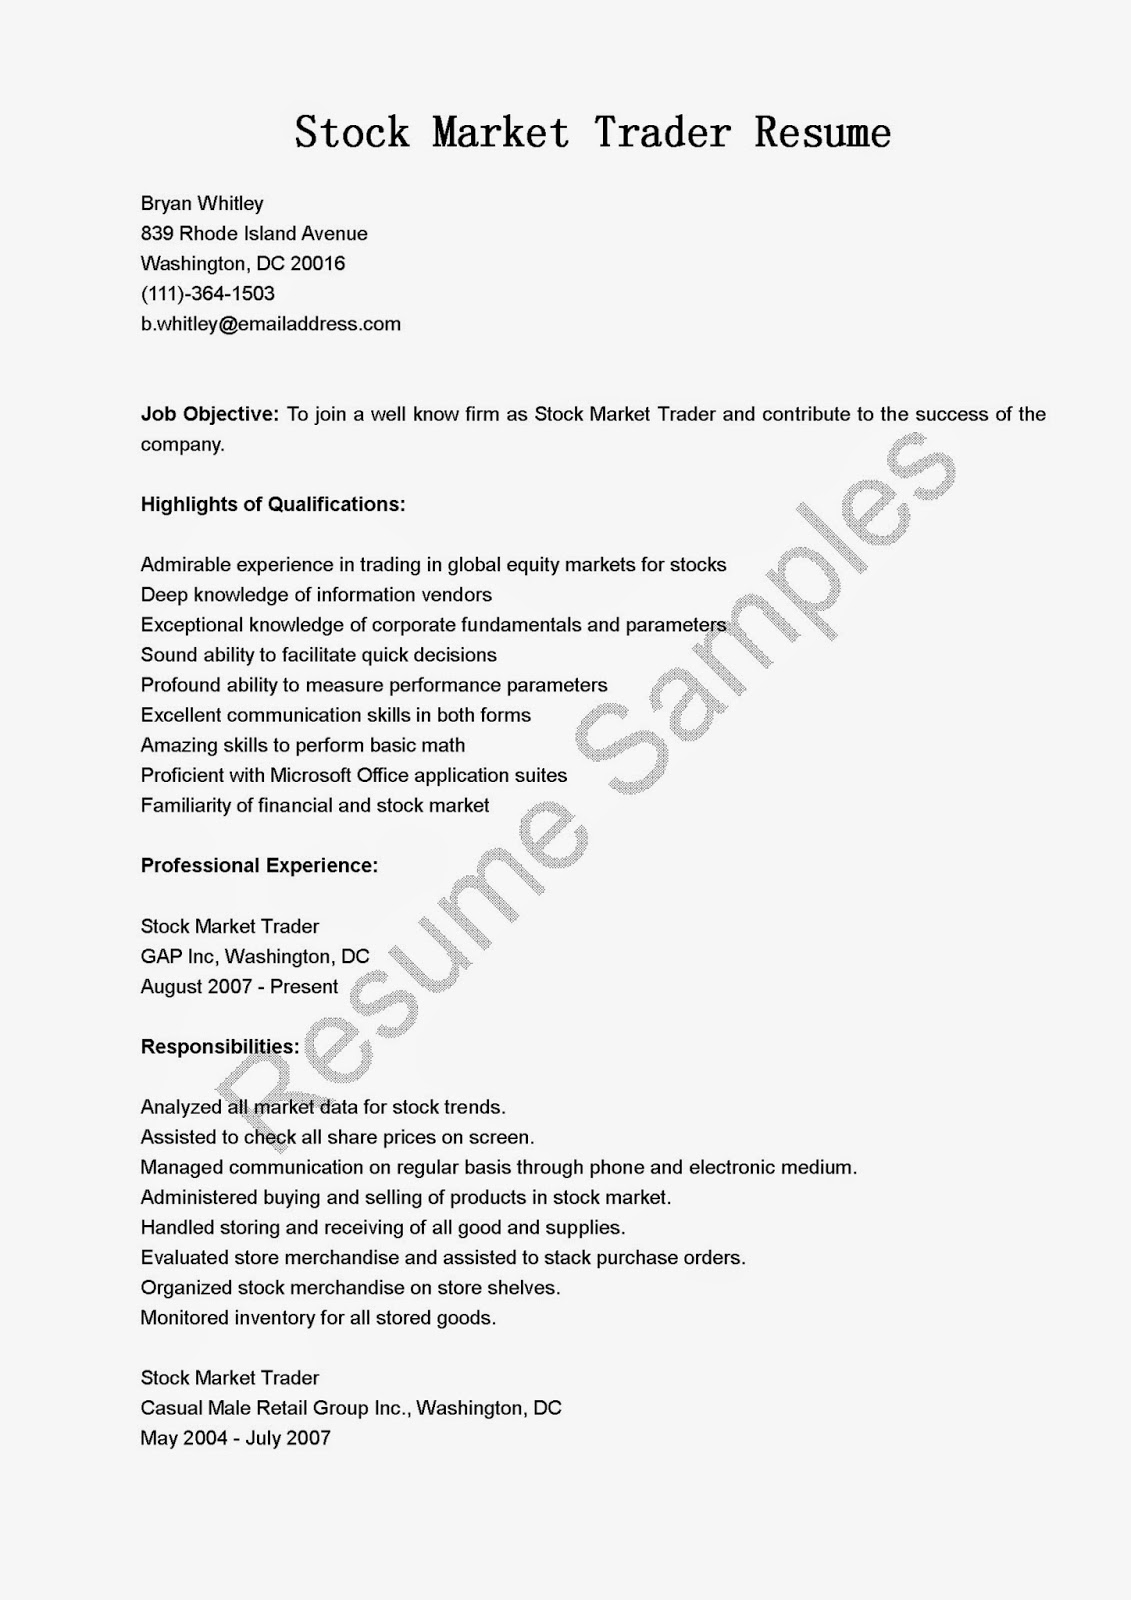 Investment analyst cover letter | Career FAQs